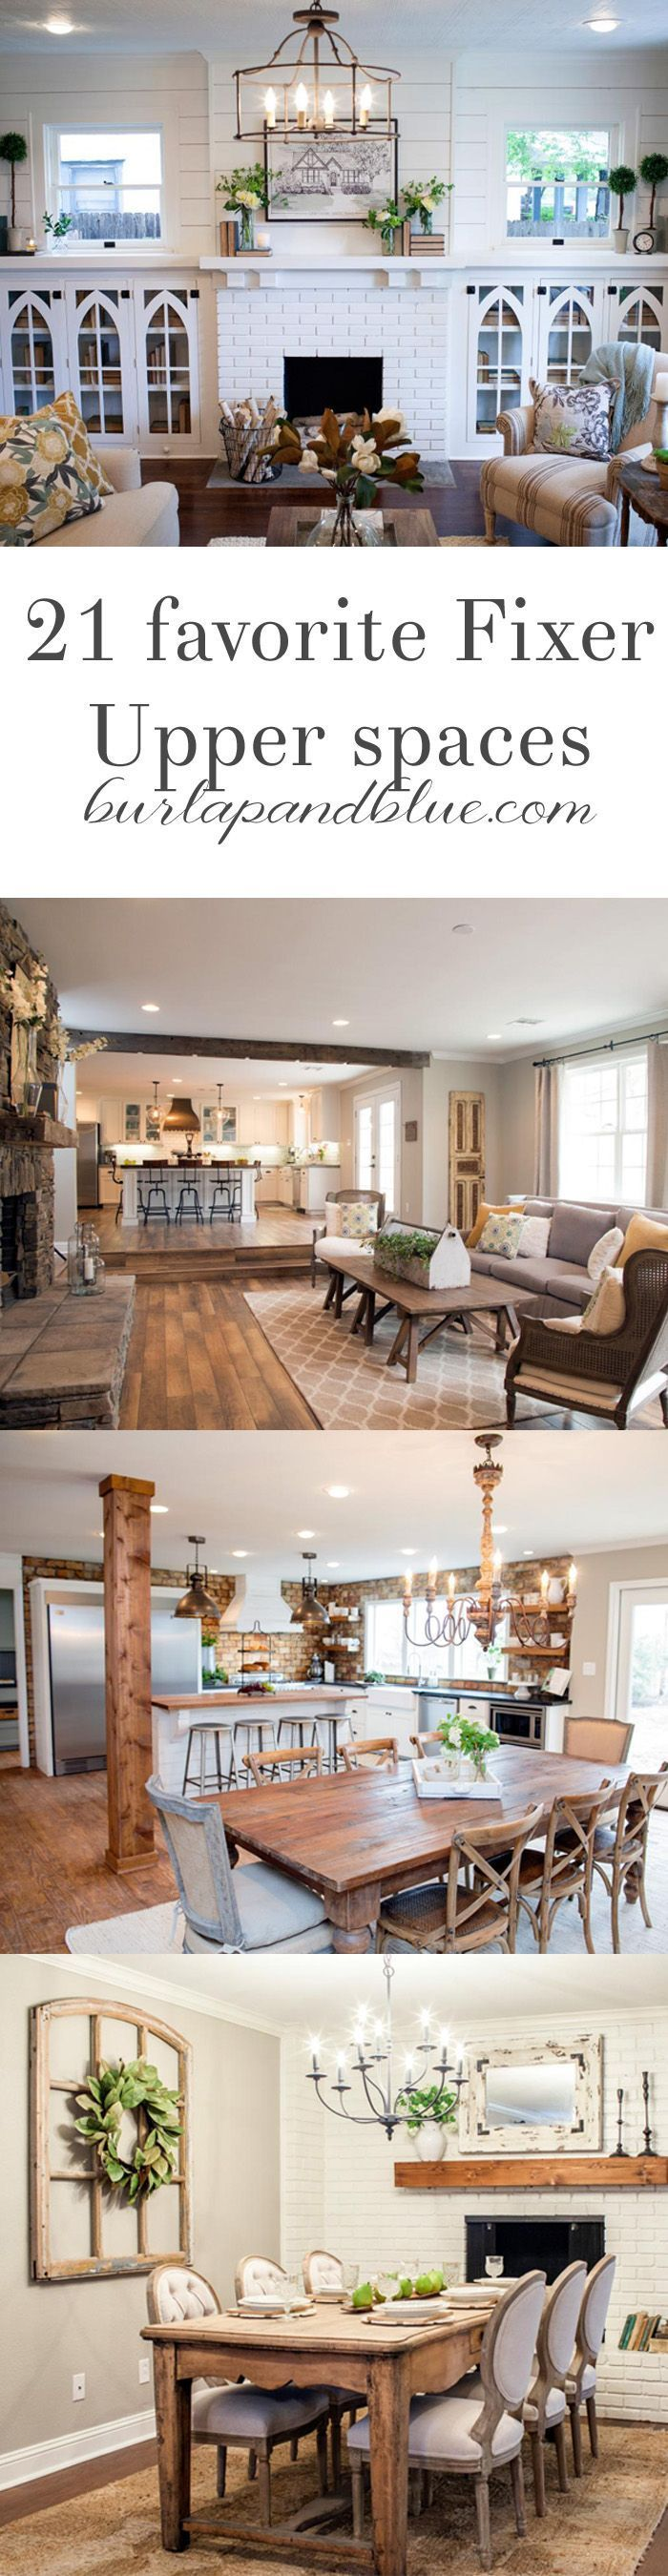 fixer upper kitchens, living and dining rooms {21 favorites!} | Haus ...